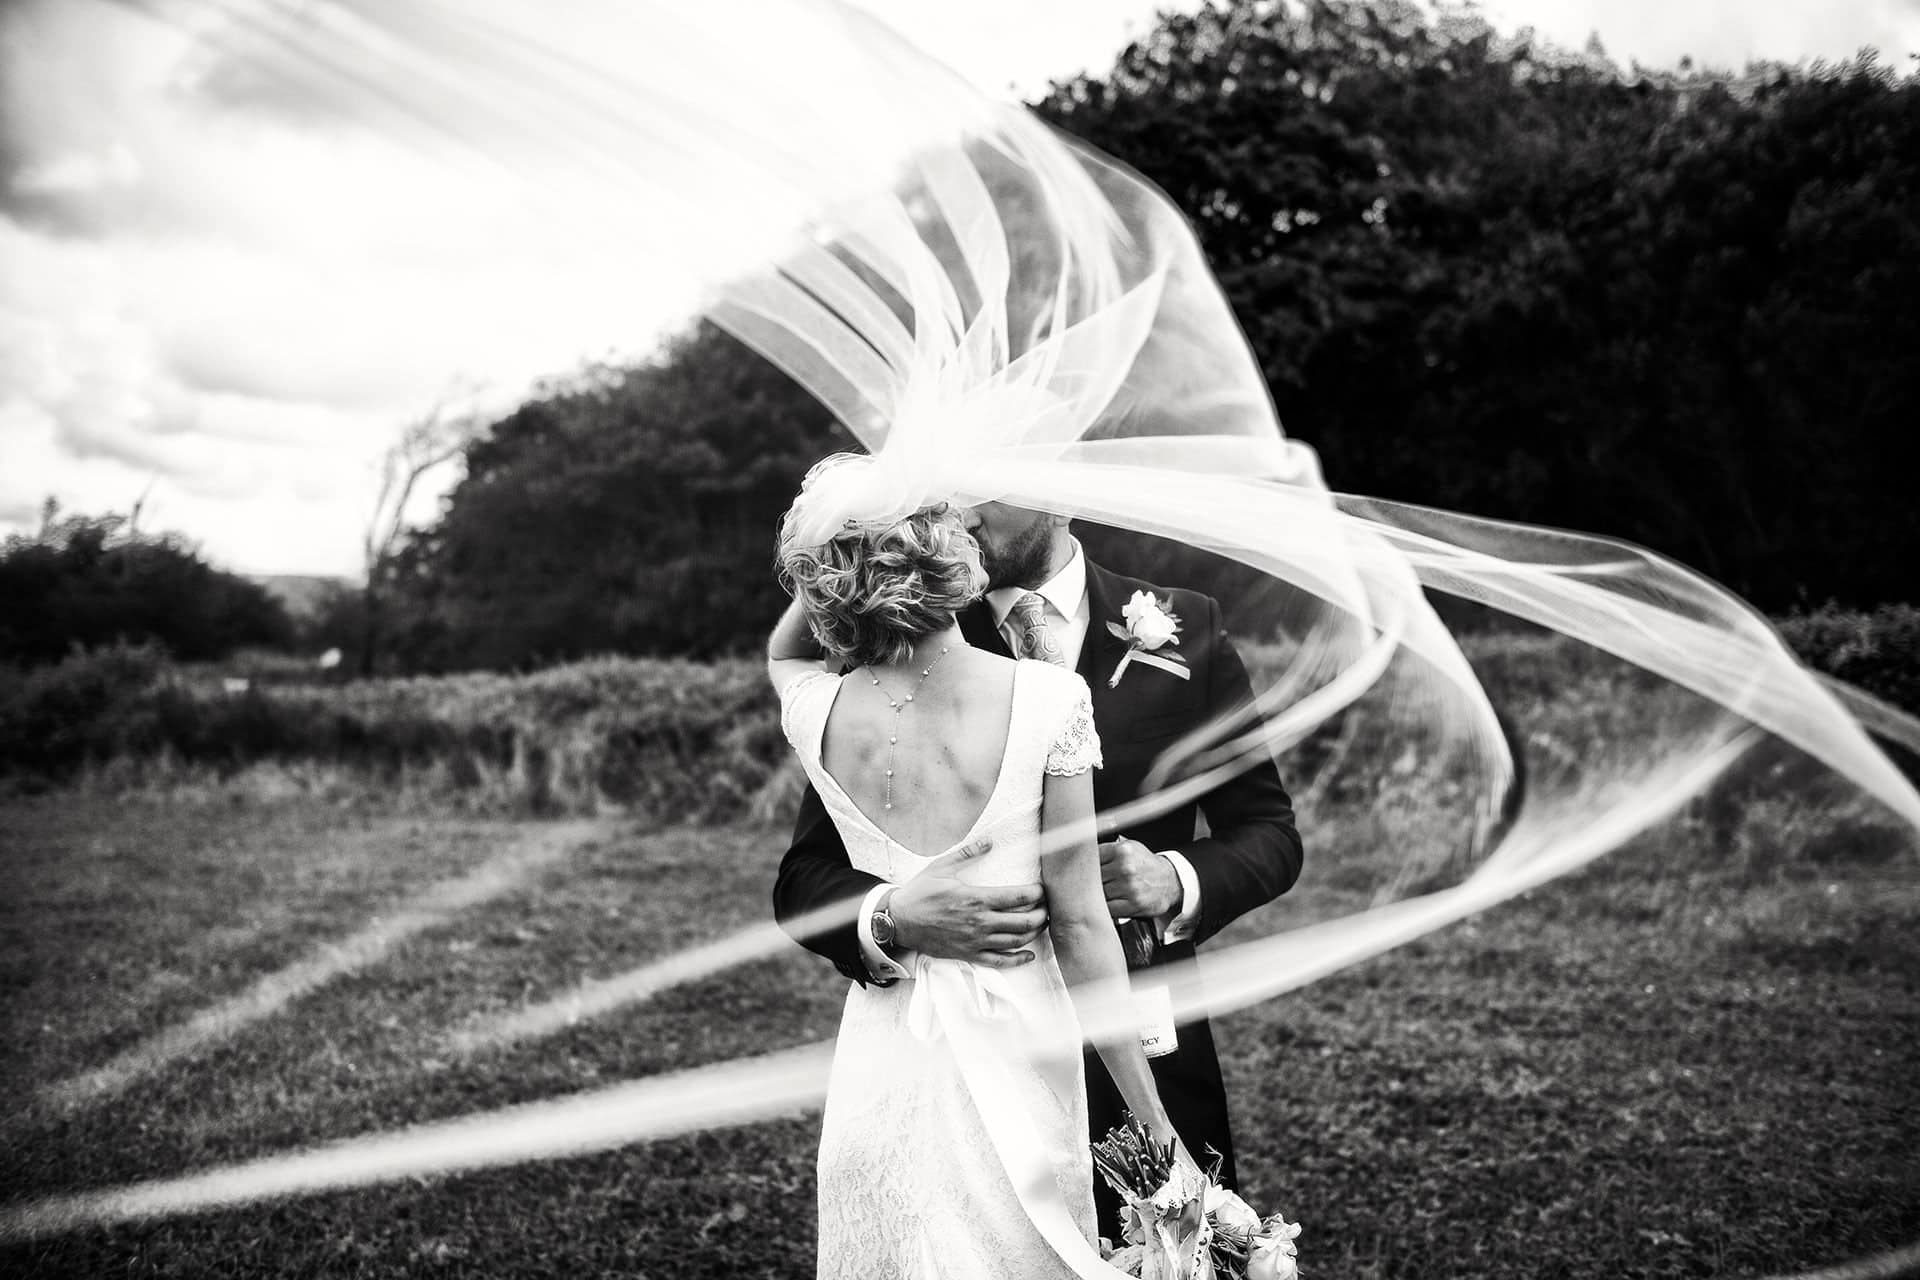 Aberaeron Wedding Photographer in West Wales. Black and white image of the Bride and groom photographed behind a veil swirling in the wind. This photo won an international ISPWP award in the movement and motion section.